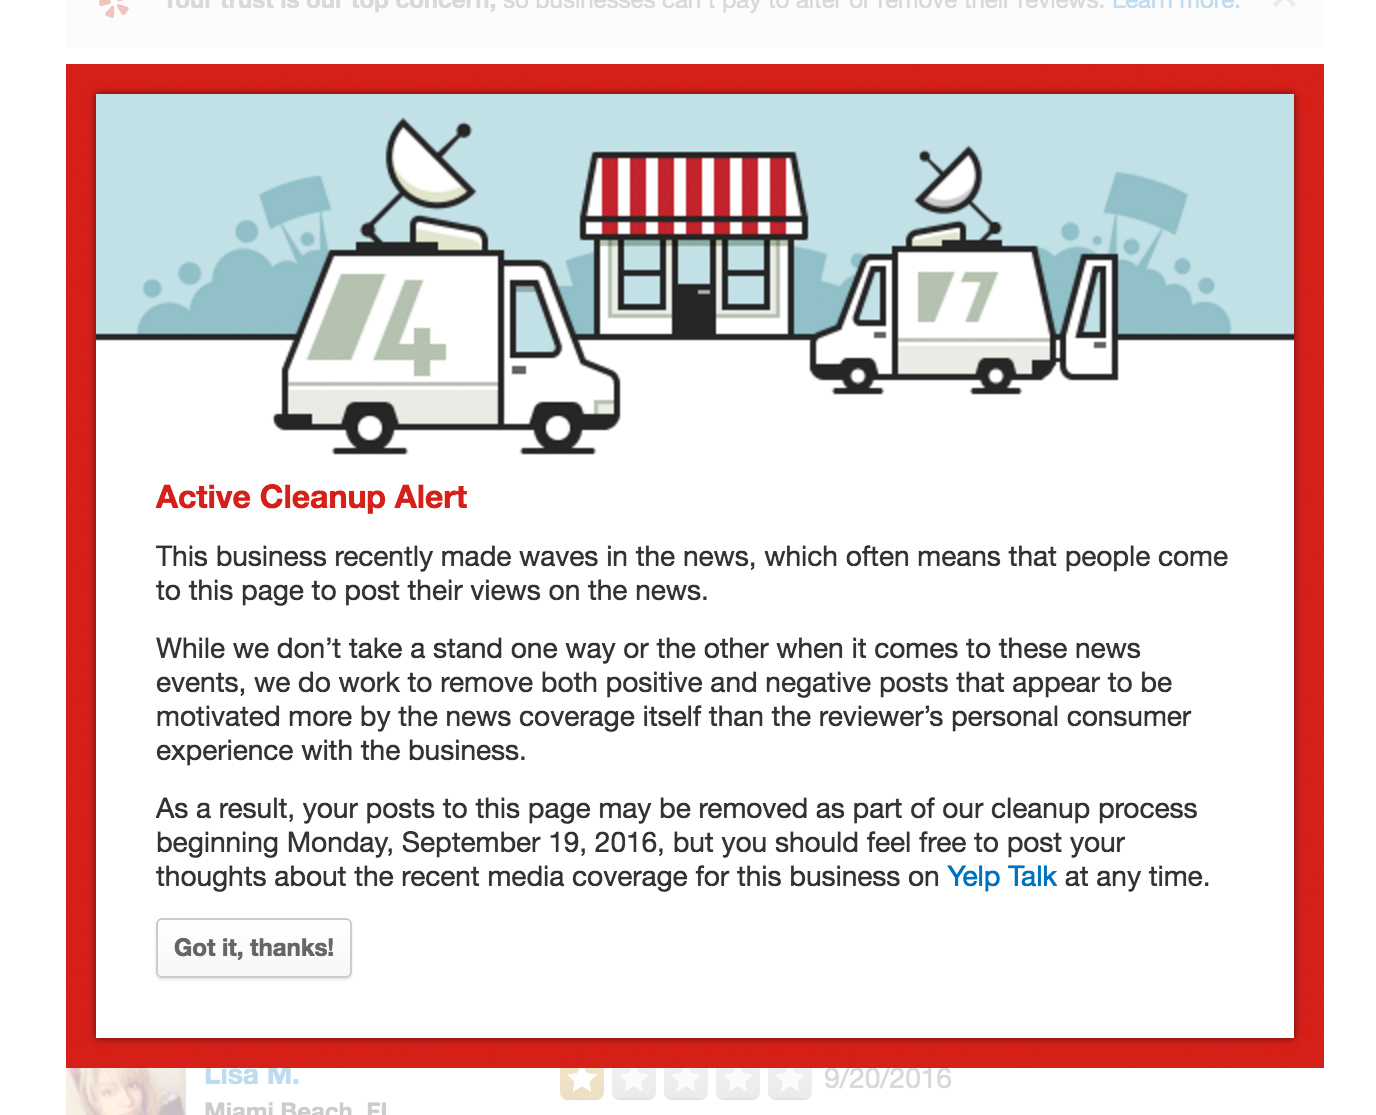 """Airing political views through Yelp has become such a popular pastime that the site had to create a """"cleanup"""" alert. A business undergoing a cleanup will have a large red box like this one at the top noting that the page is being closely monitored by Yelp staff."""